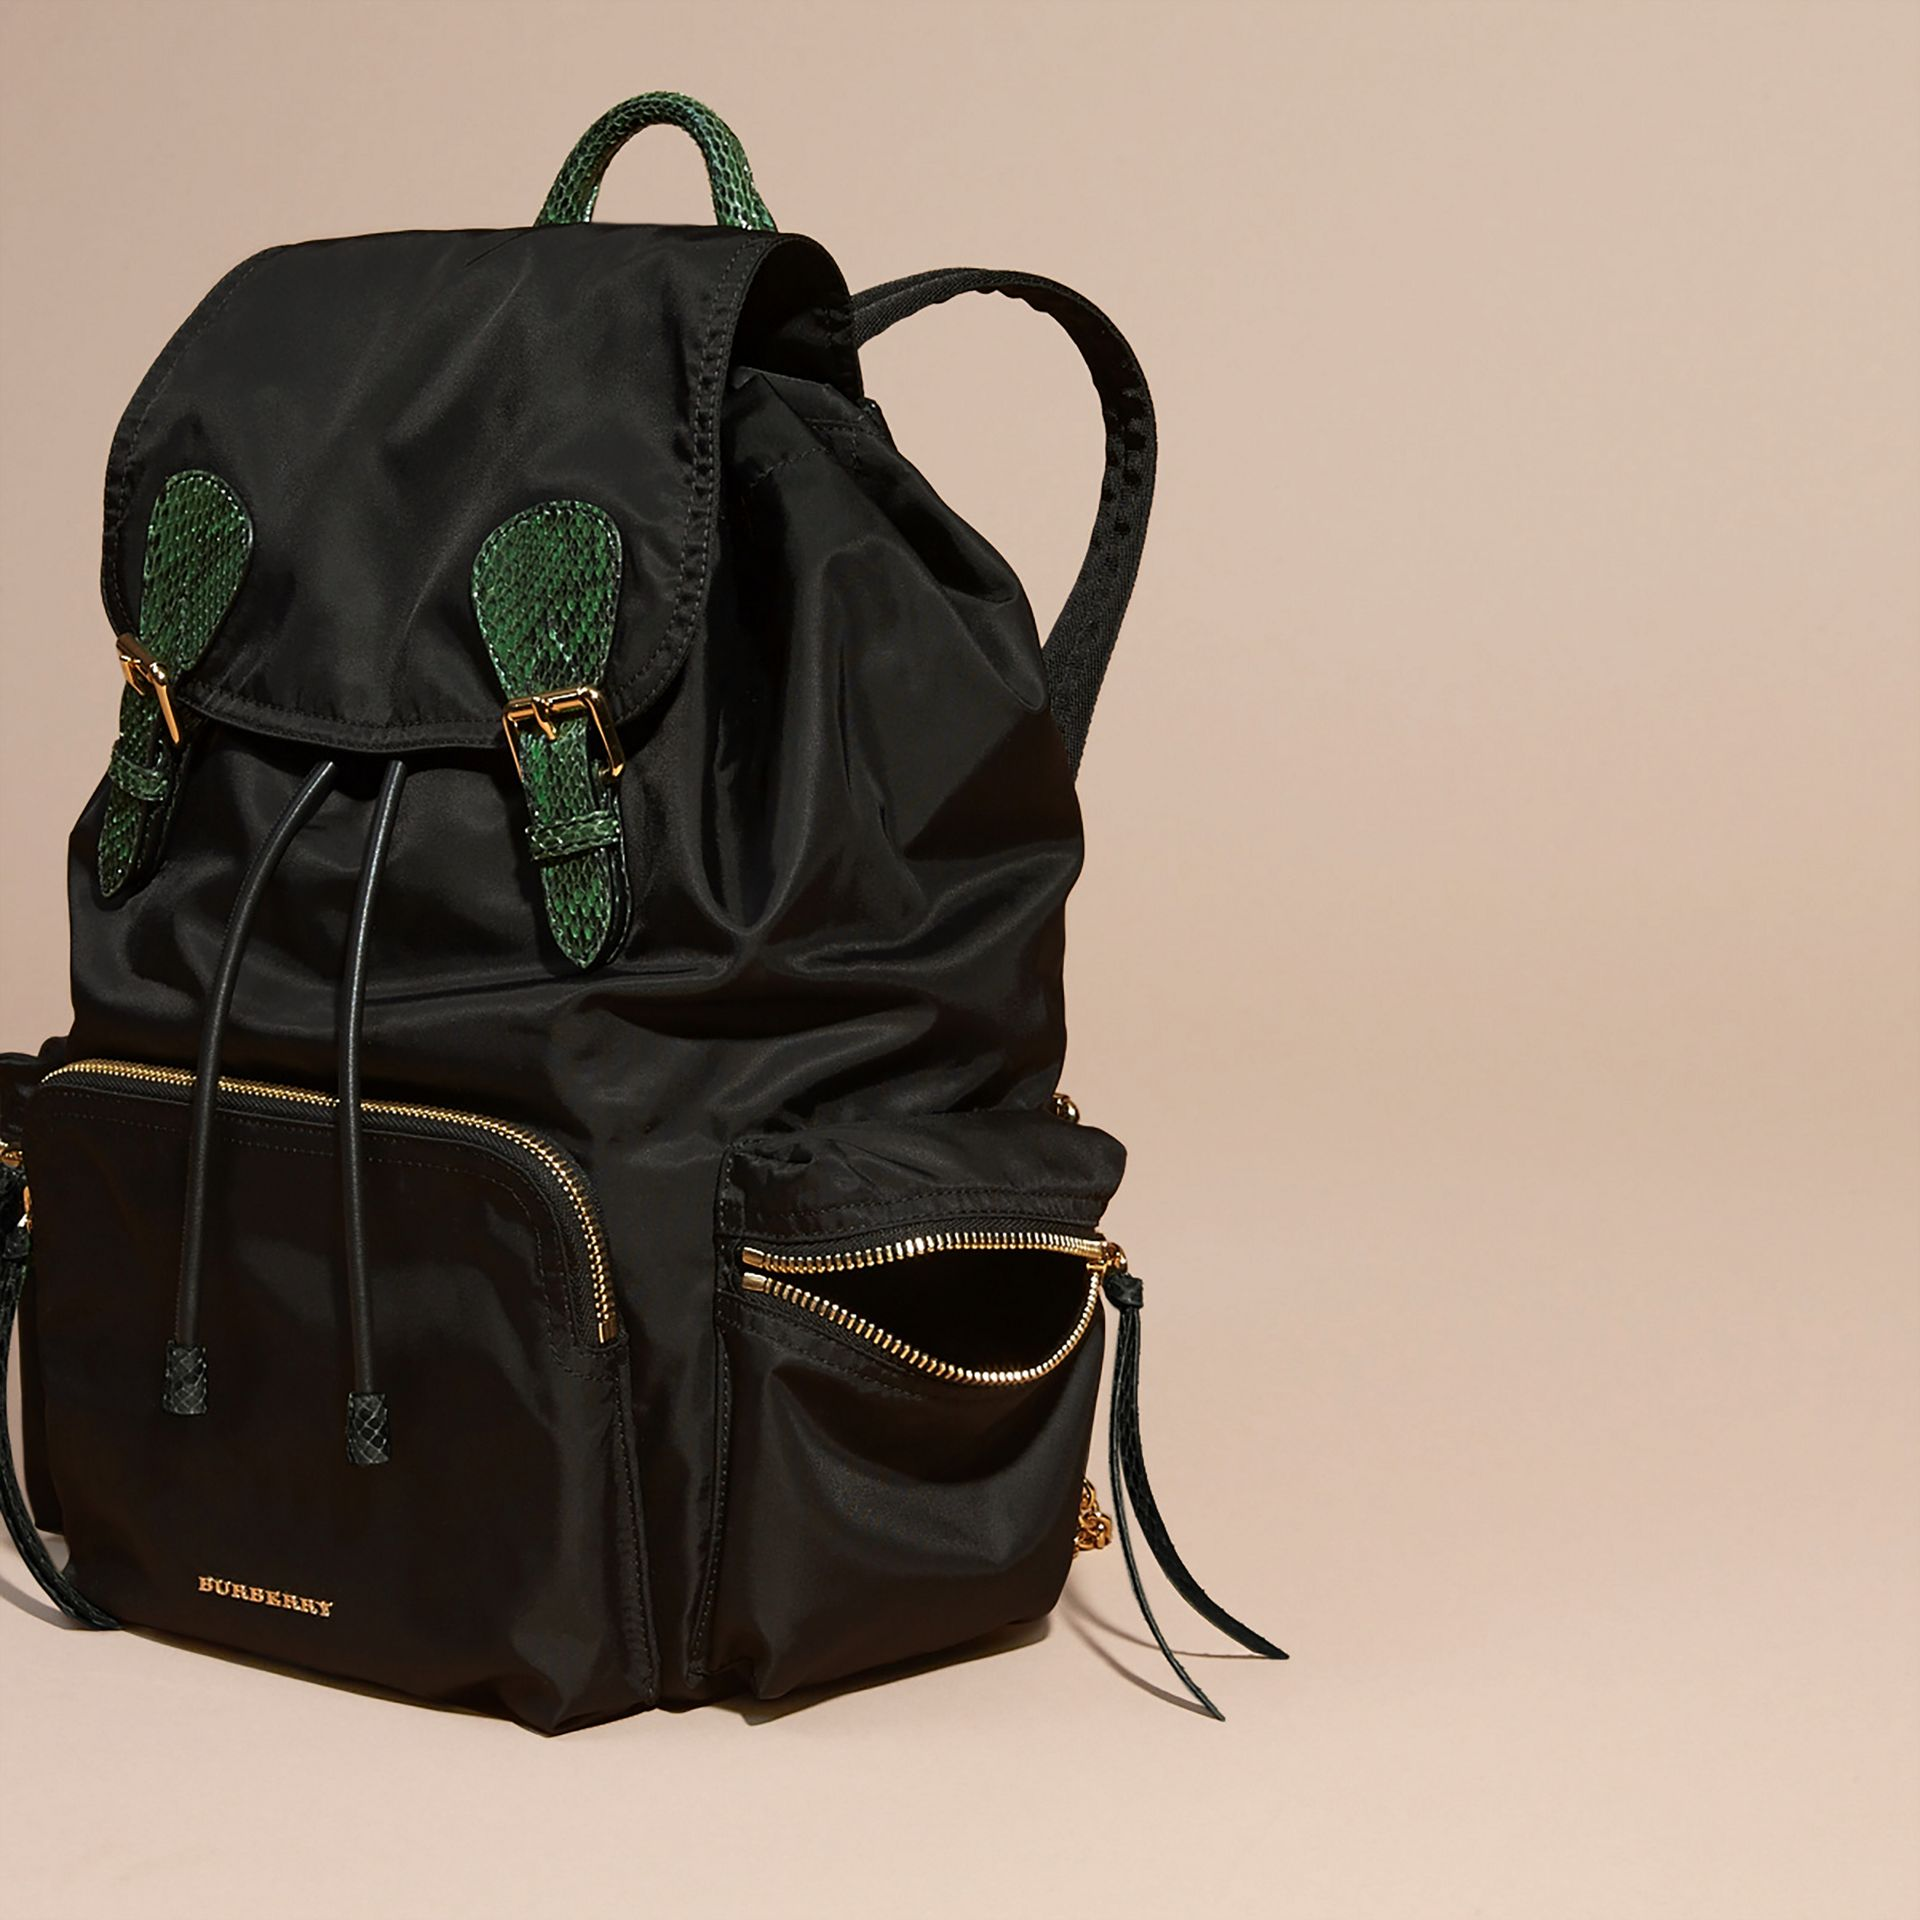 Zaino The Rucksack grande in nylon tecnico e pelle di serpente Nero/verde Brillante - immagine della galleria 6